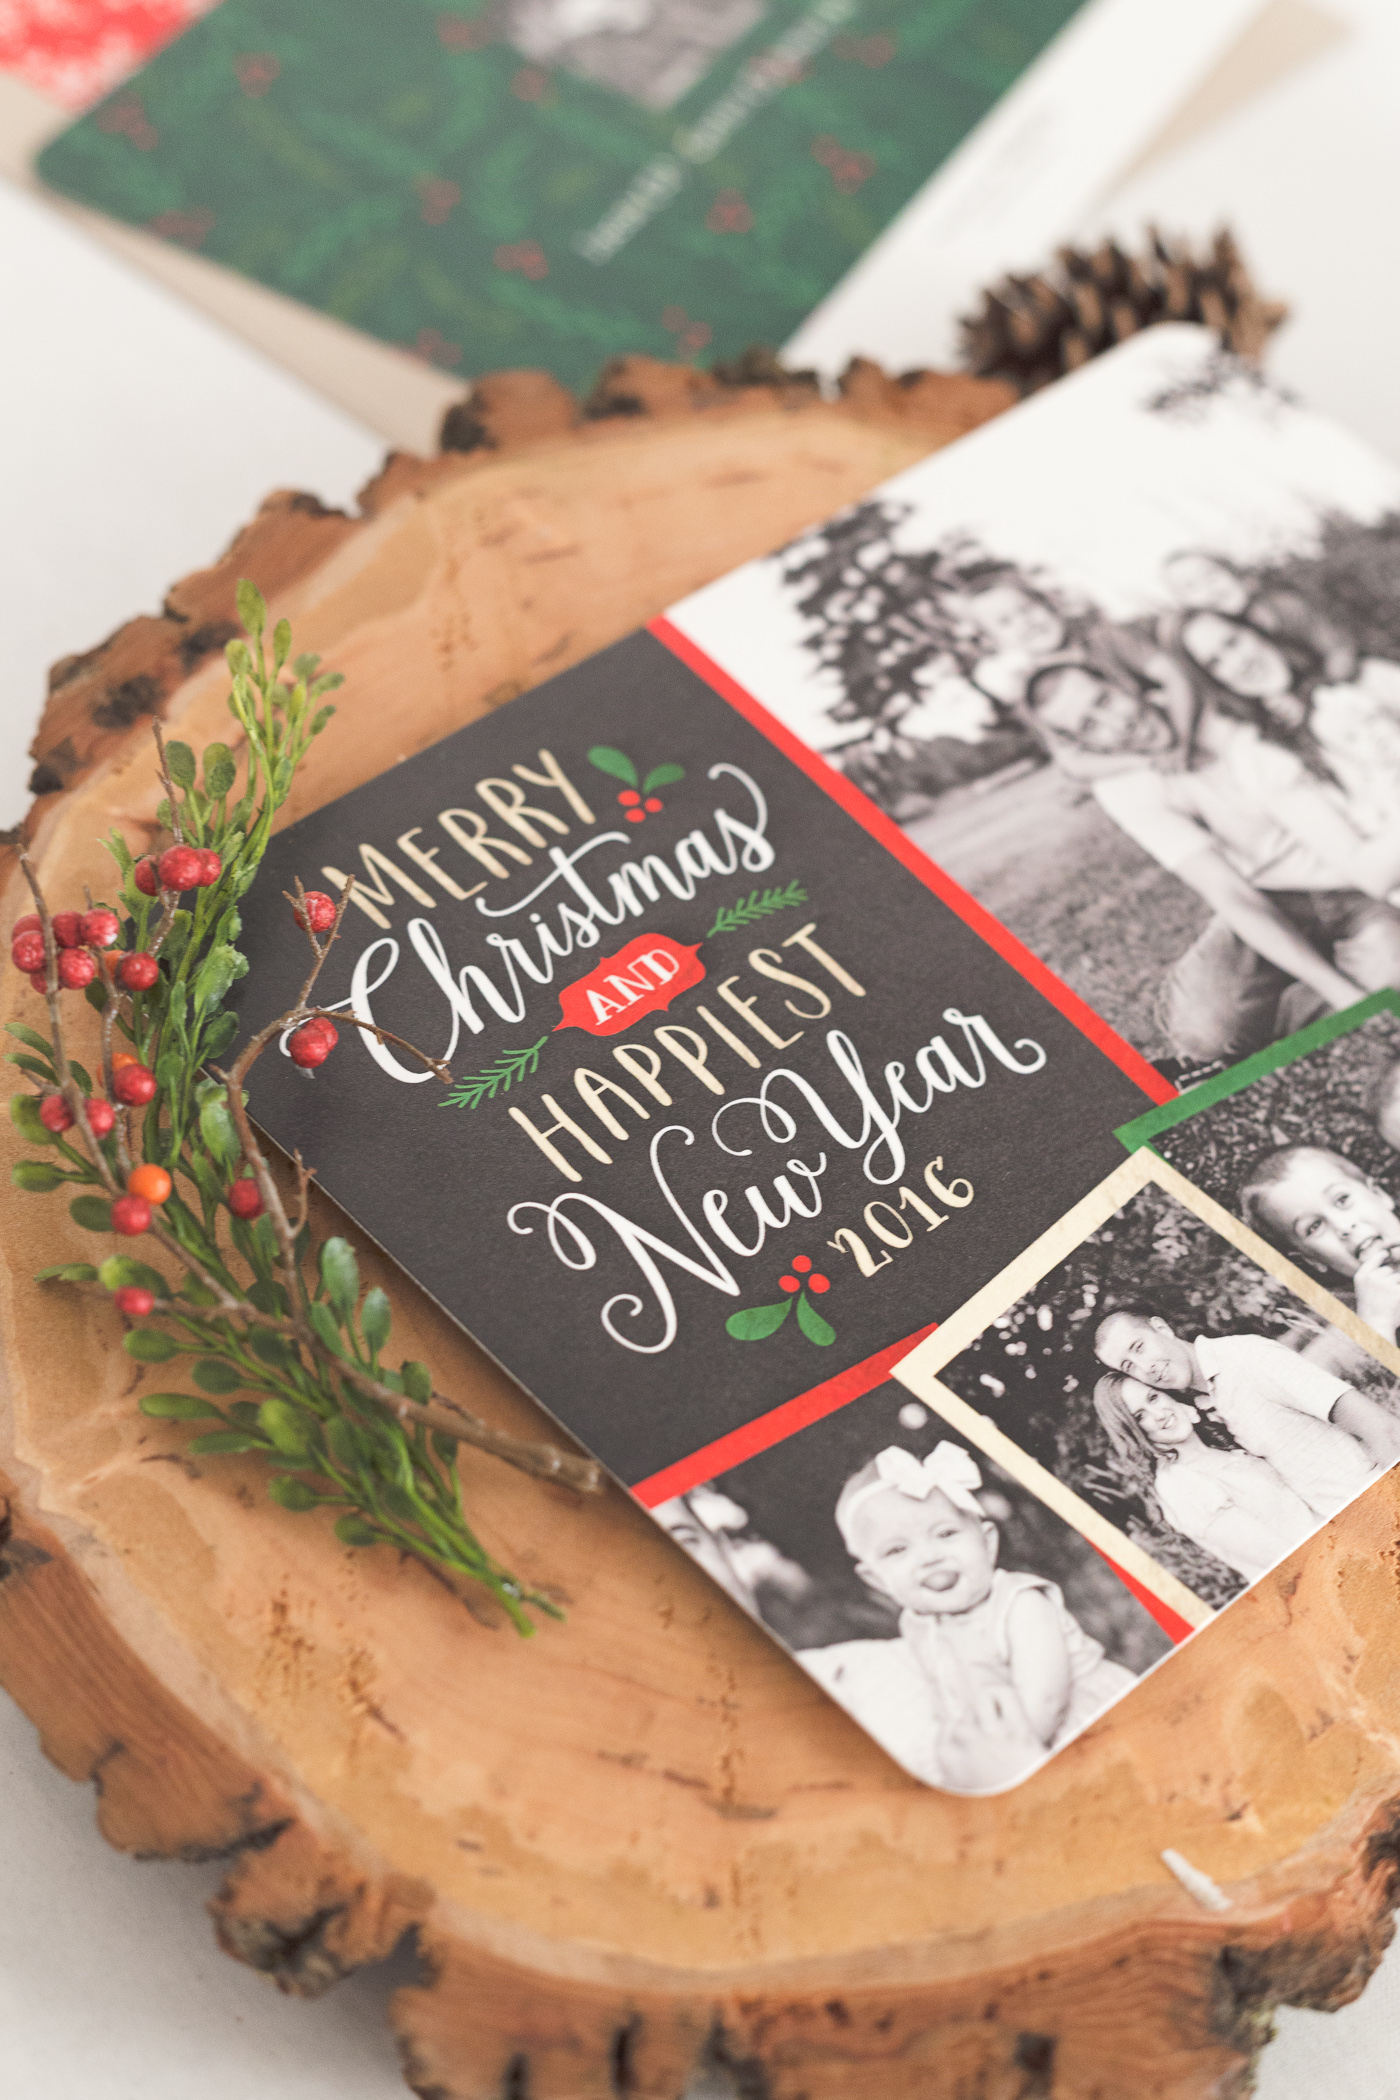 Family Christmas Cards: Shutterfly helps make our yearly tradition of sending Christmas cards a breeze! With many templates to choose from and all sorts of editing options you are well on your way to making the perfect holiday card.